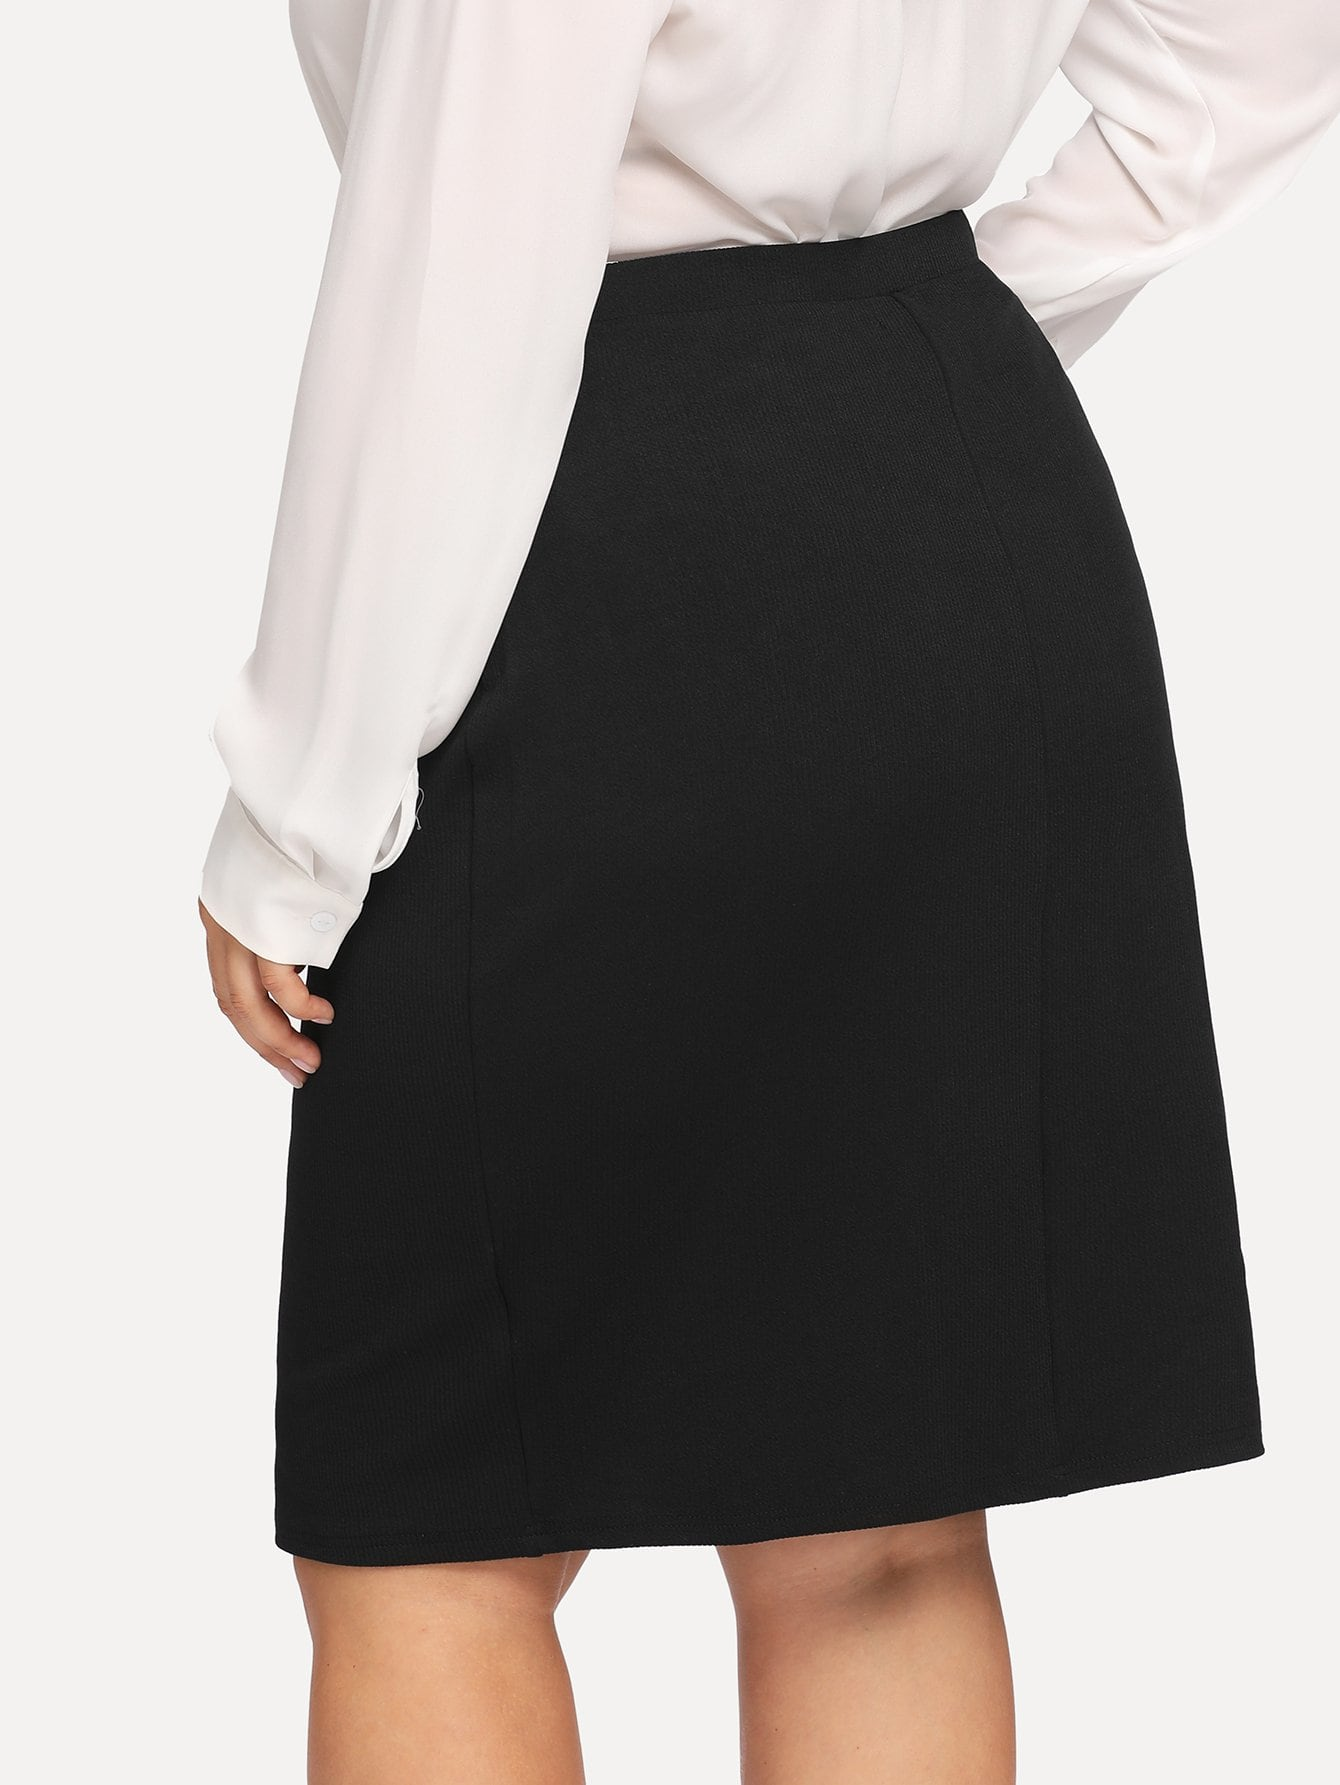 Plus Size Solid Black Knee Length Wrap Skirt | Plus Size Bottoms | SHEIN | Joan & Vern's Apparel